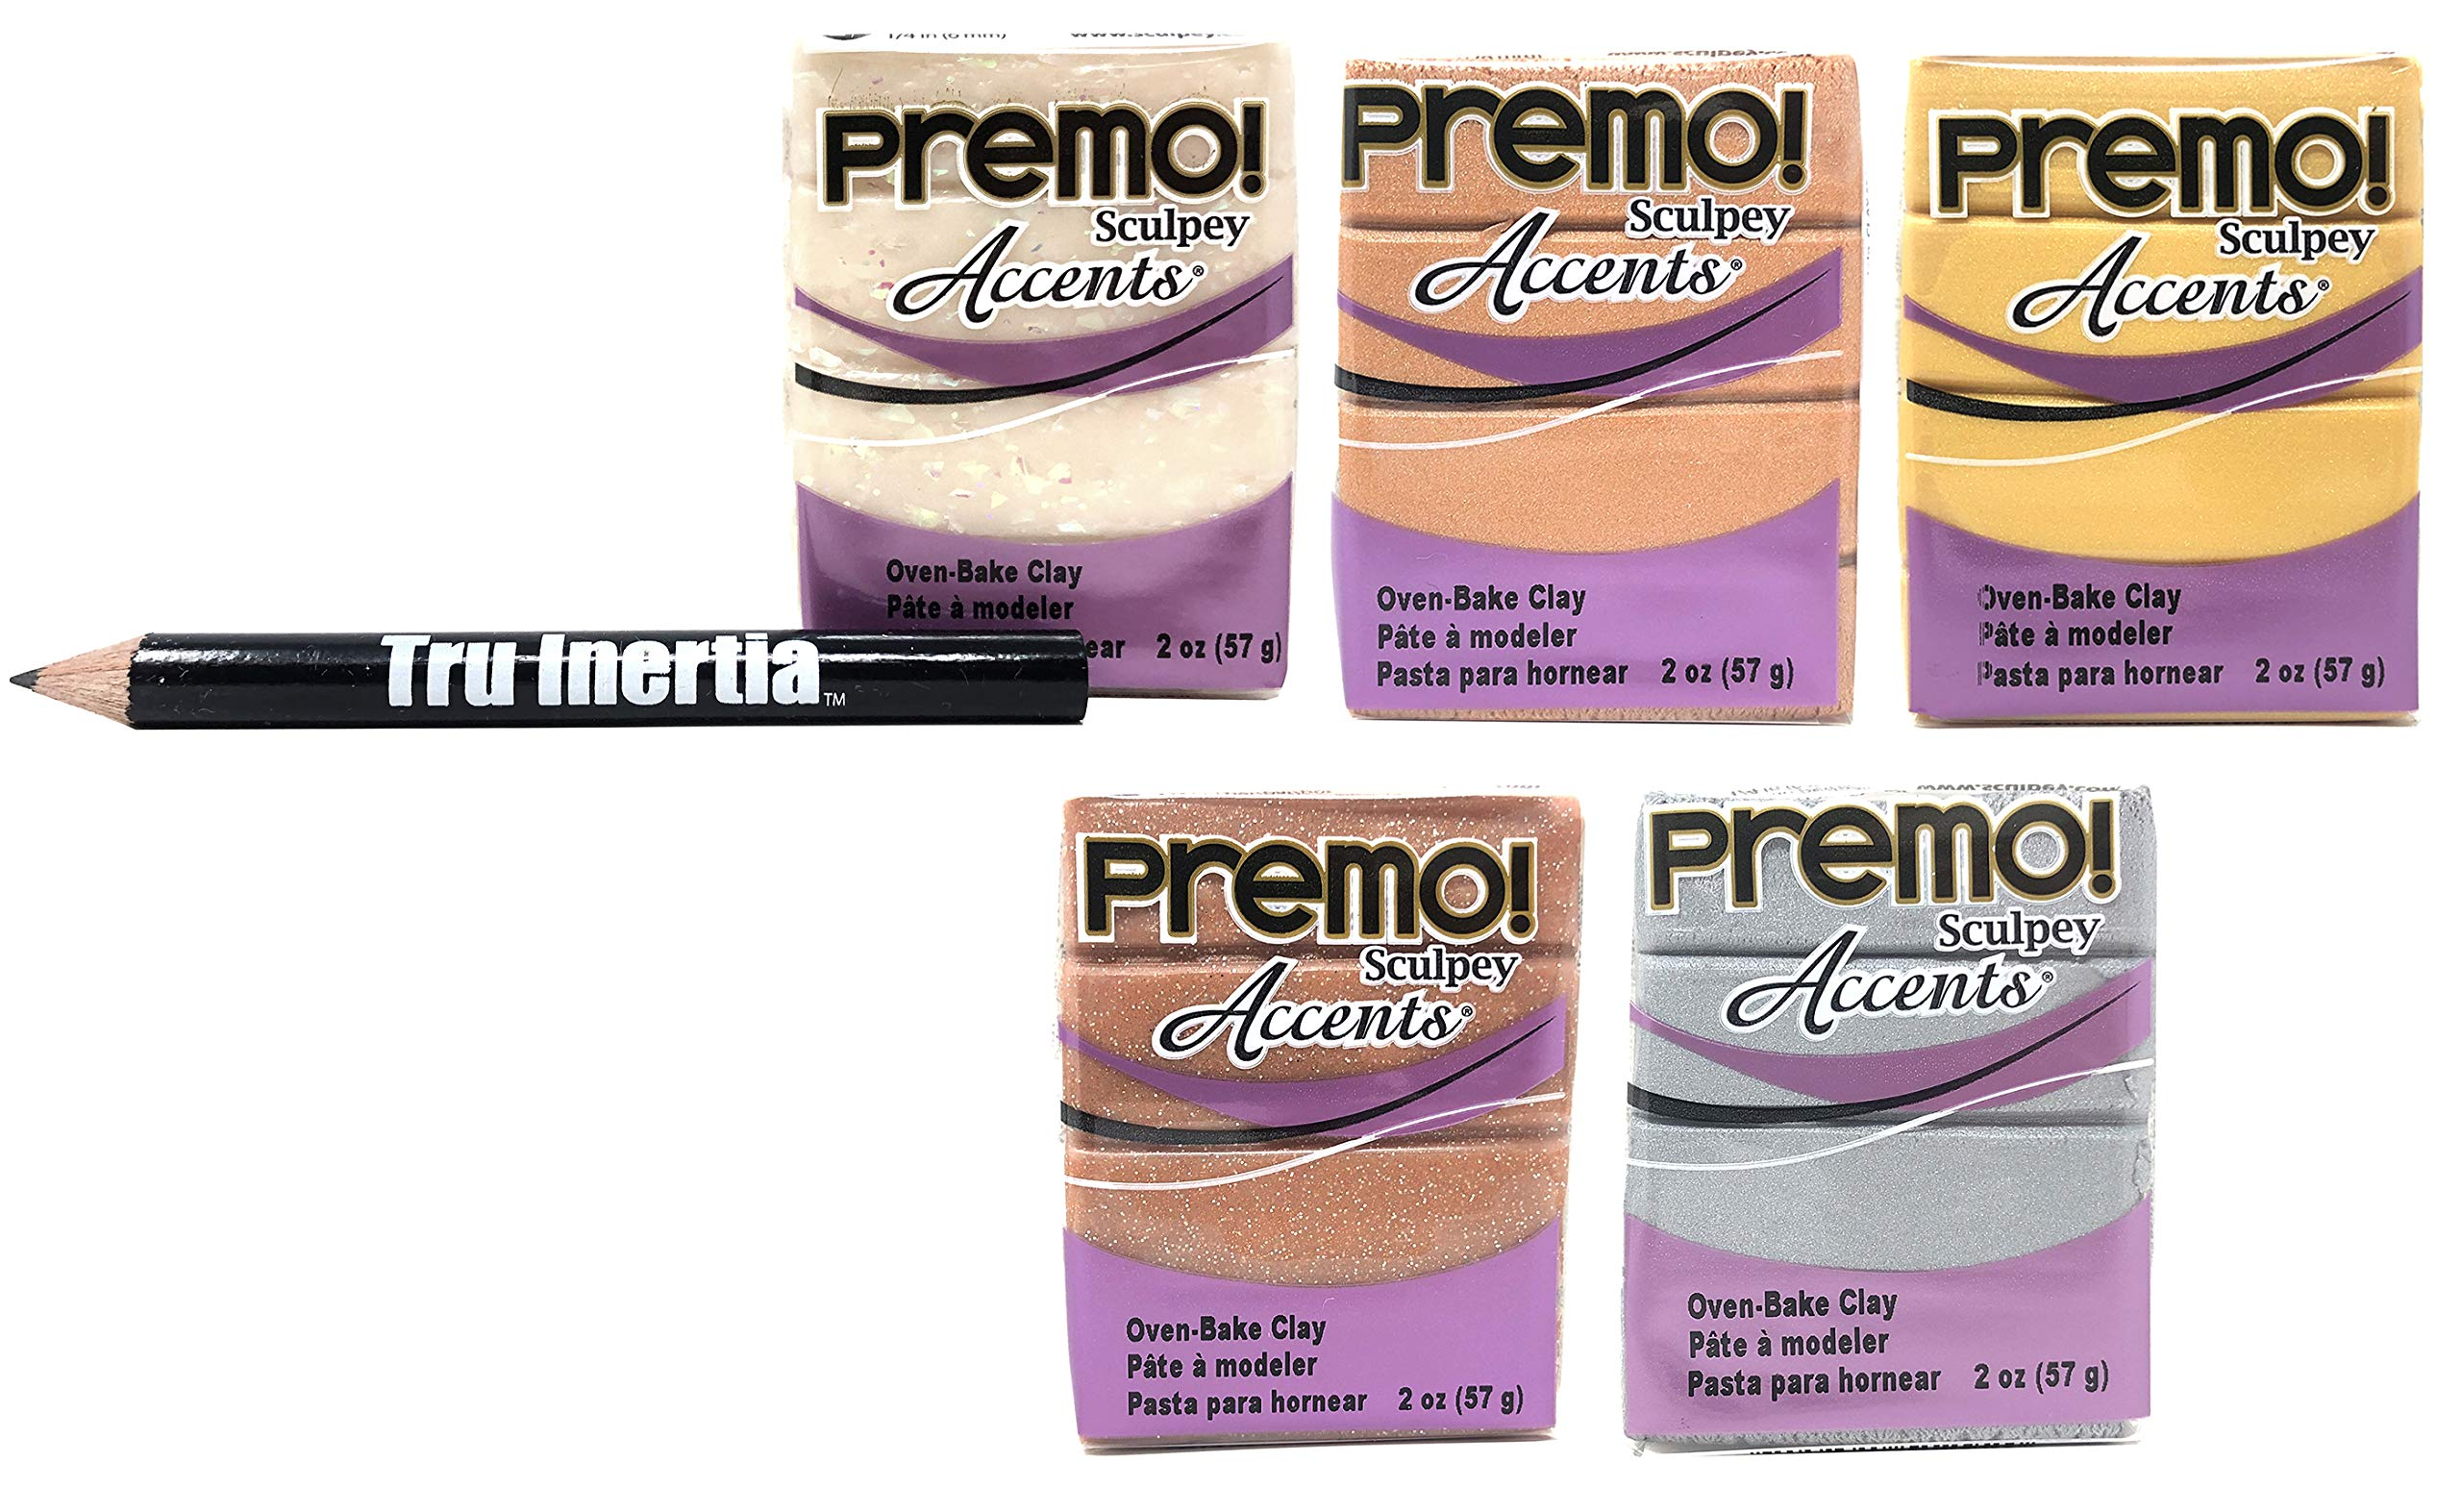 Tru Inertia Sculpey Premo Accents Oven Bake Clay 2 Ounce Variety Pack of 5 - 18K Gold, Copper, Rose Gold Glitter, Opal, Silver Clay Variety Pencil